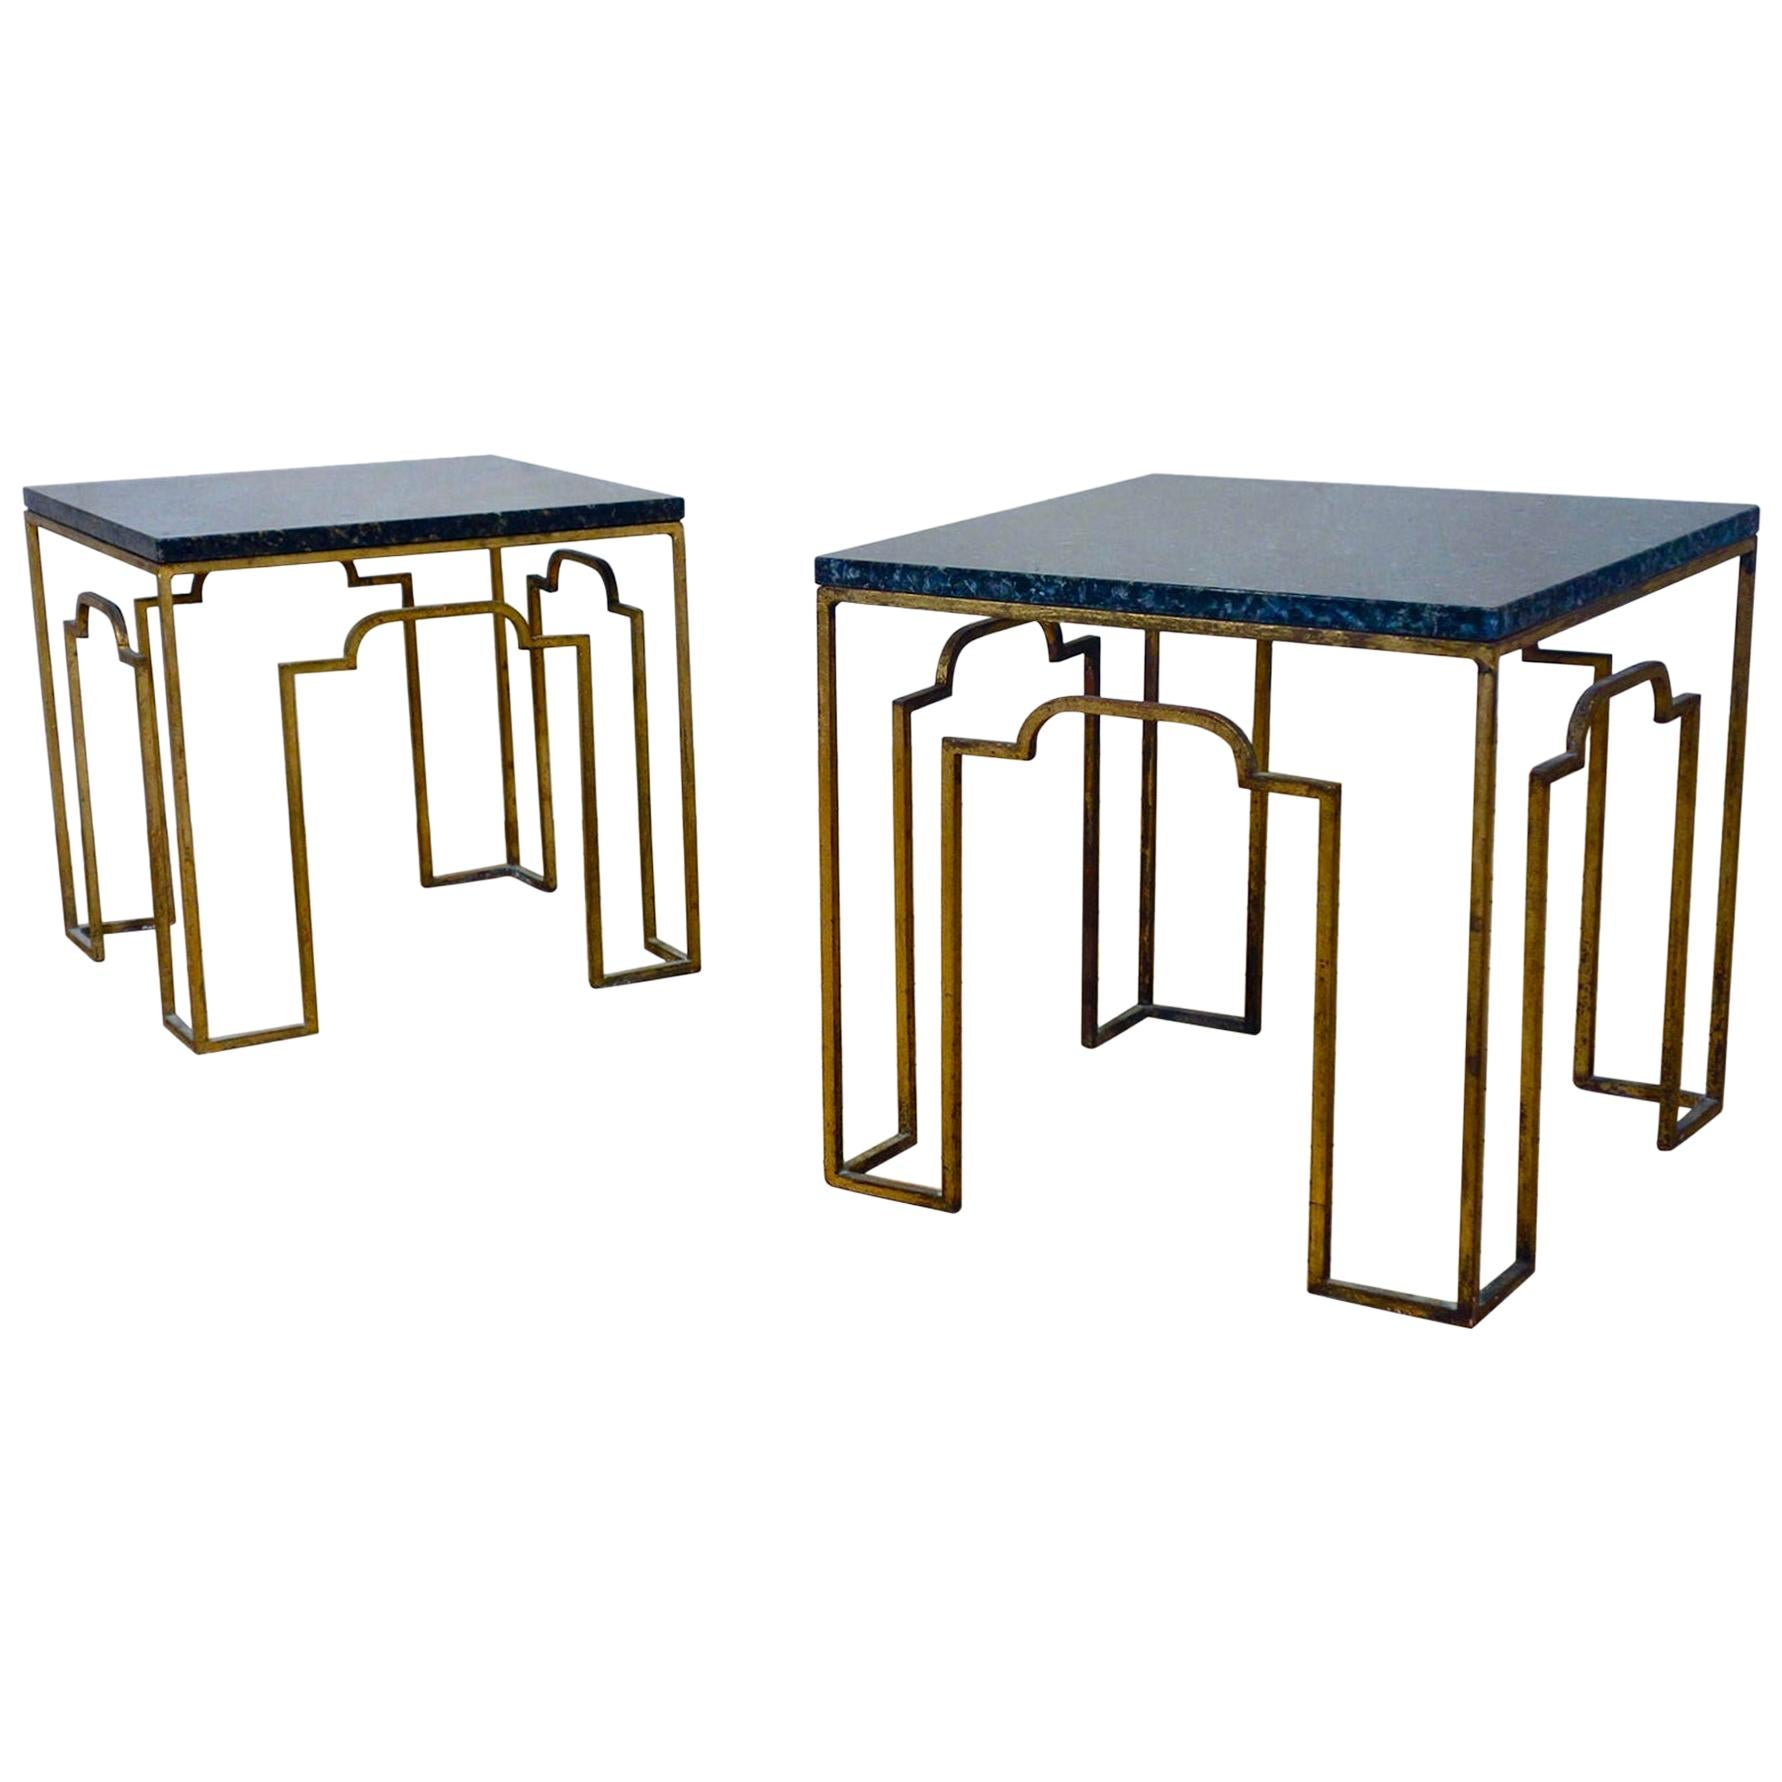 Charming Pair of 20th Century Gilt Metal Occasional Tables